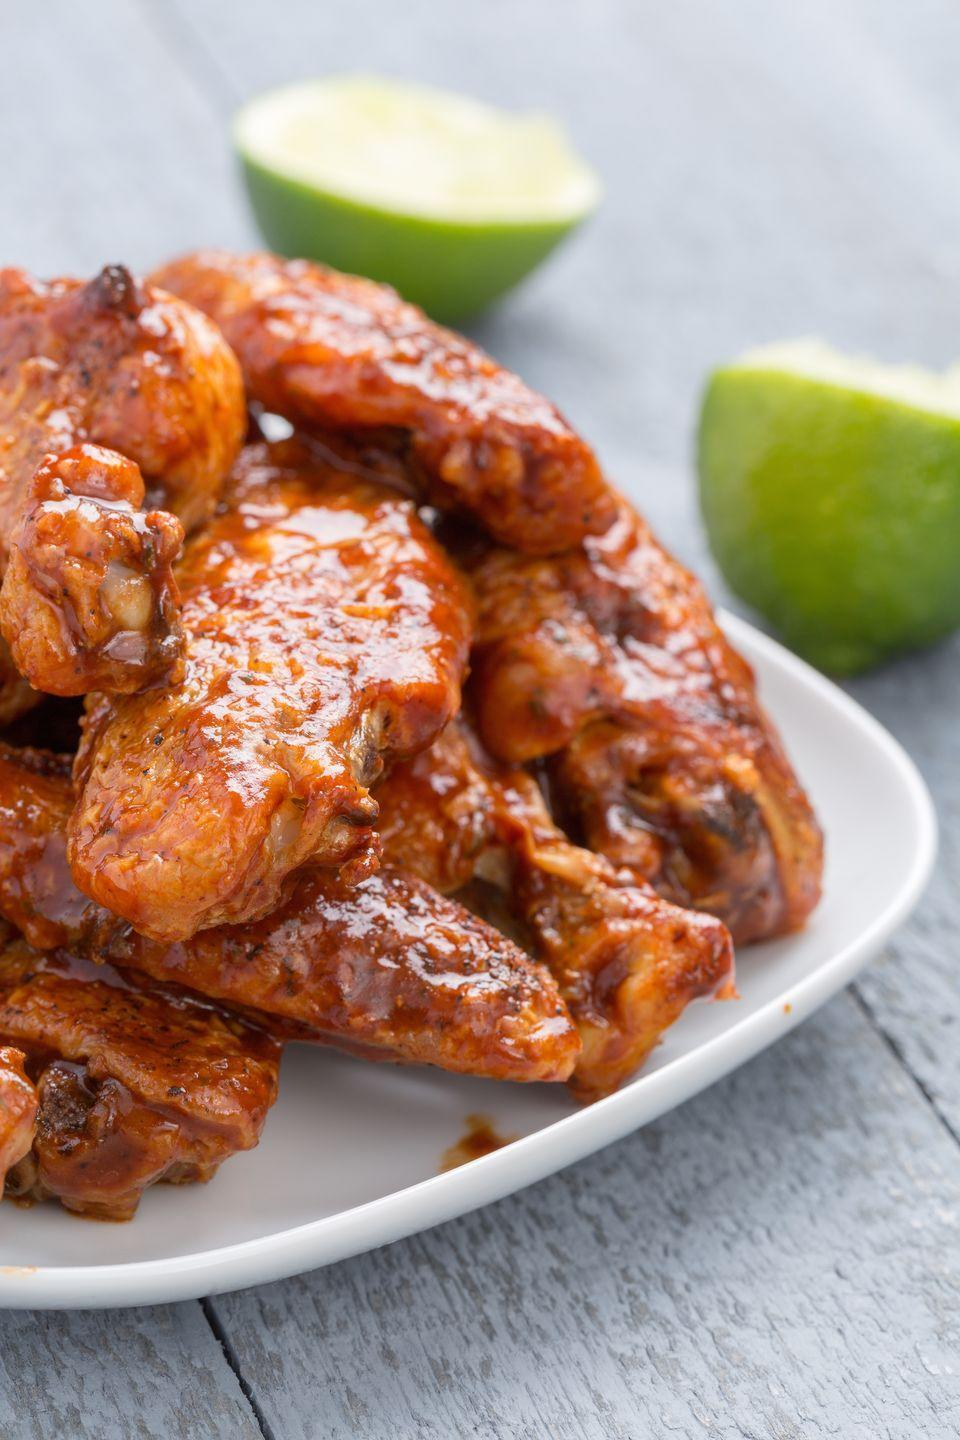 """<p>Don't underestimate the powerful heat of chipotle peppers: If you're the type who thinks Sriracha is spicy enough, these wings are not for you. Squeeze them with extra lime to tame the flame.</p><p>Get the recipe from <a href=""""https://www.redbookmag.com/cooking/recipe-ideas/recipes/a44371/slow-cooker-chipotle-lime-chicken-wings-recipe/"""" rel=""""nofollow noopener"""" target=""""_blank"""" data-ylk=""""slk:Delish"""" class=""""link rapid-noclick-resp"""">Delish</a>. </p>"""